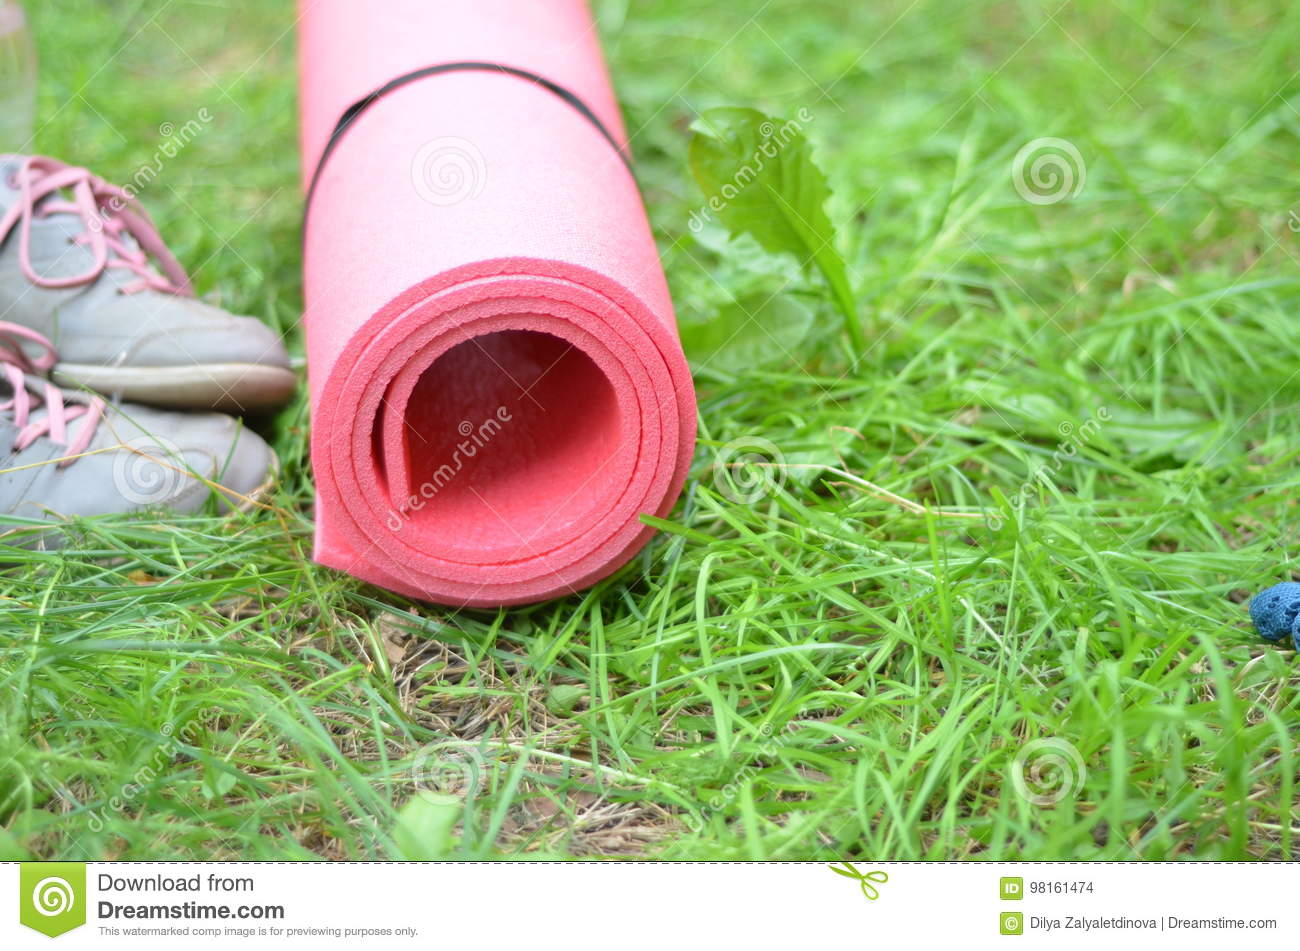 570985263822d Healthy lifestyle background. Yoga mat, sport shoes, bottle of water on  grass background